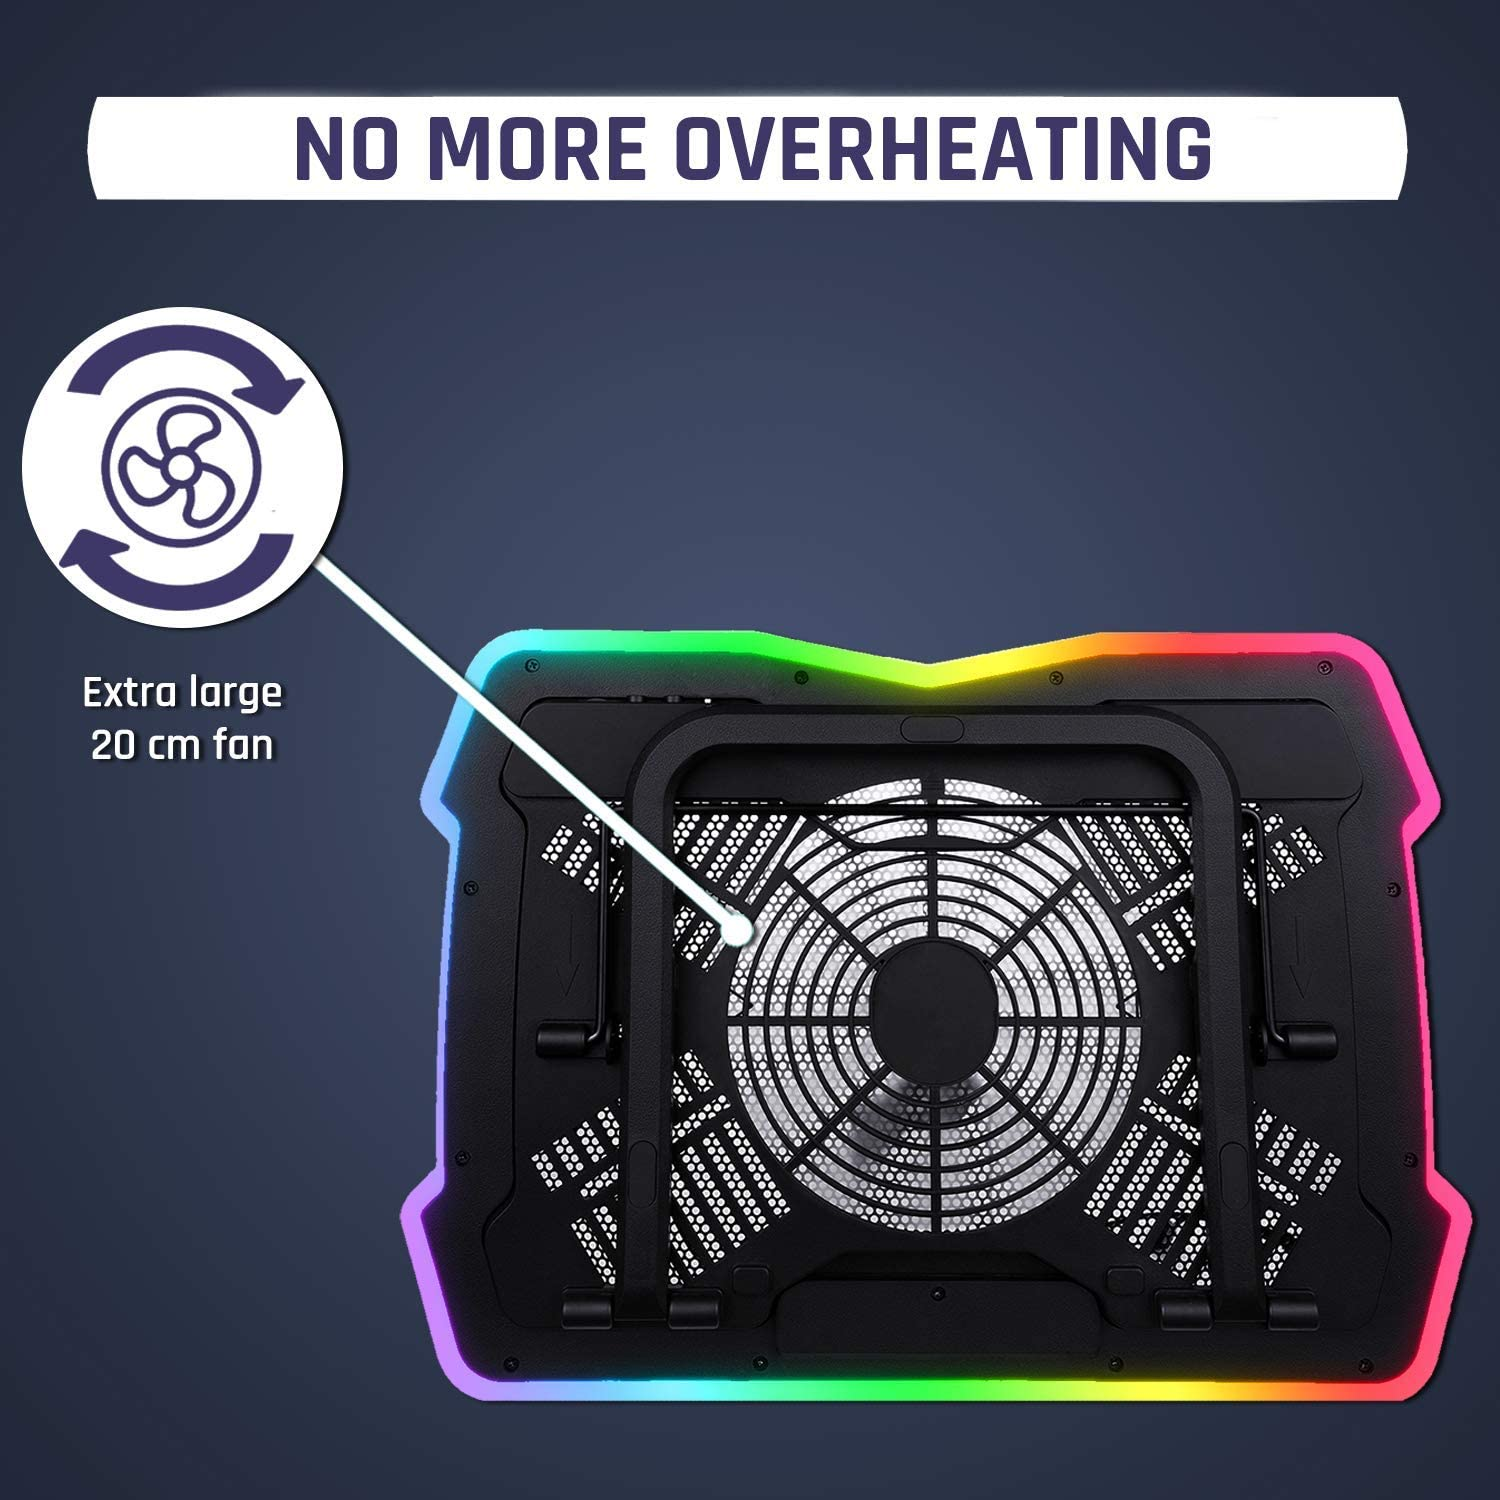 Get A Cooling Pad To Get More Airflow